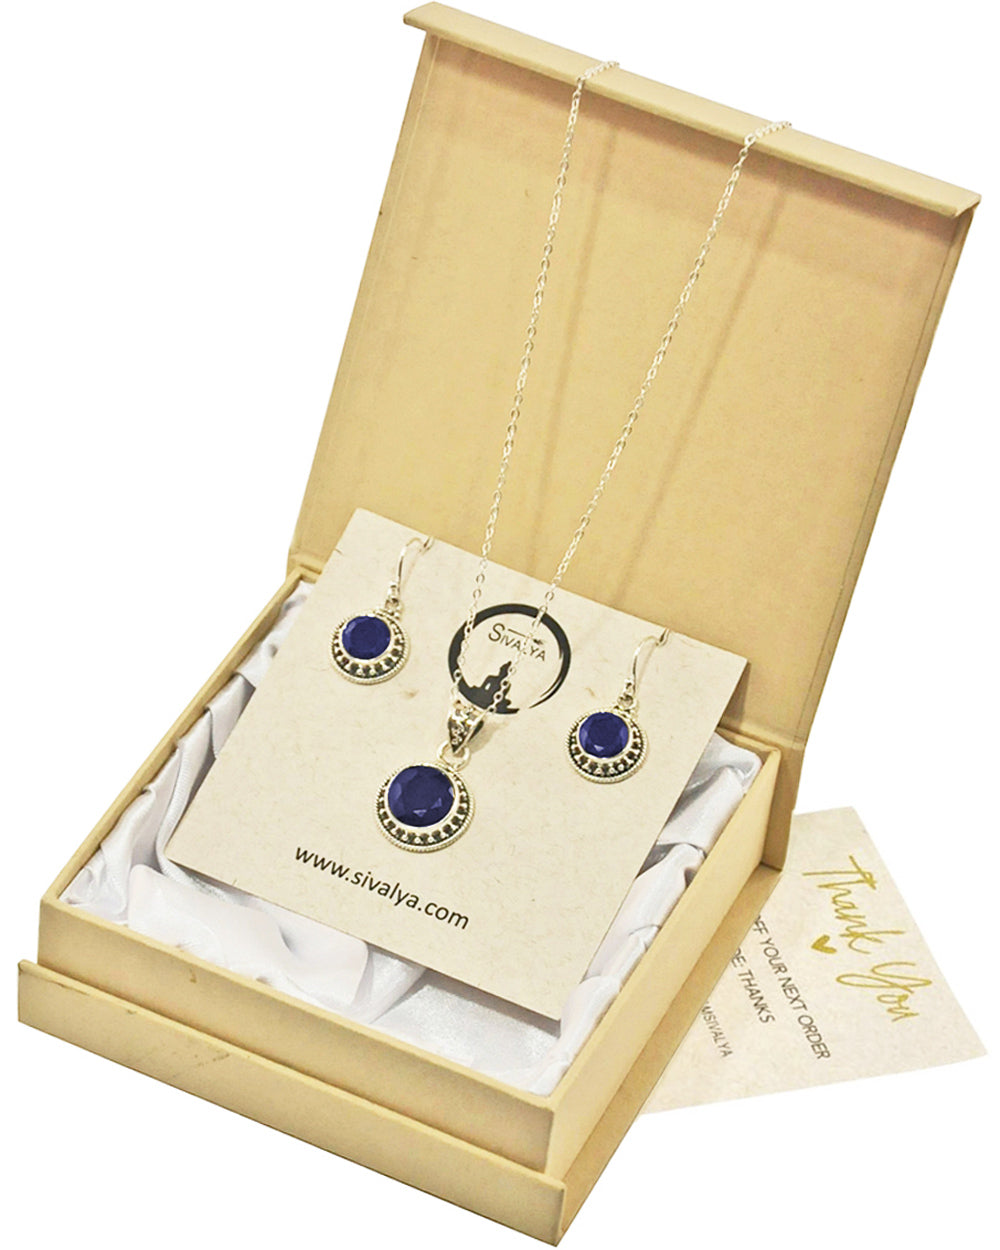 Aurora Raw Sapphire Necklace and Earrings Jewelry Set in Sterling Silver